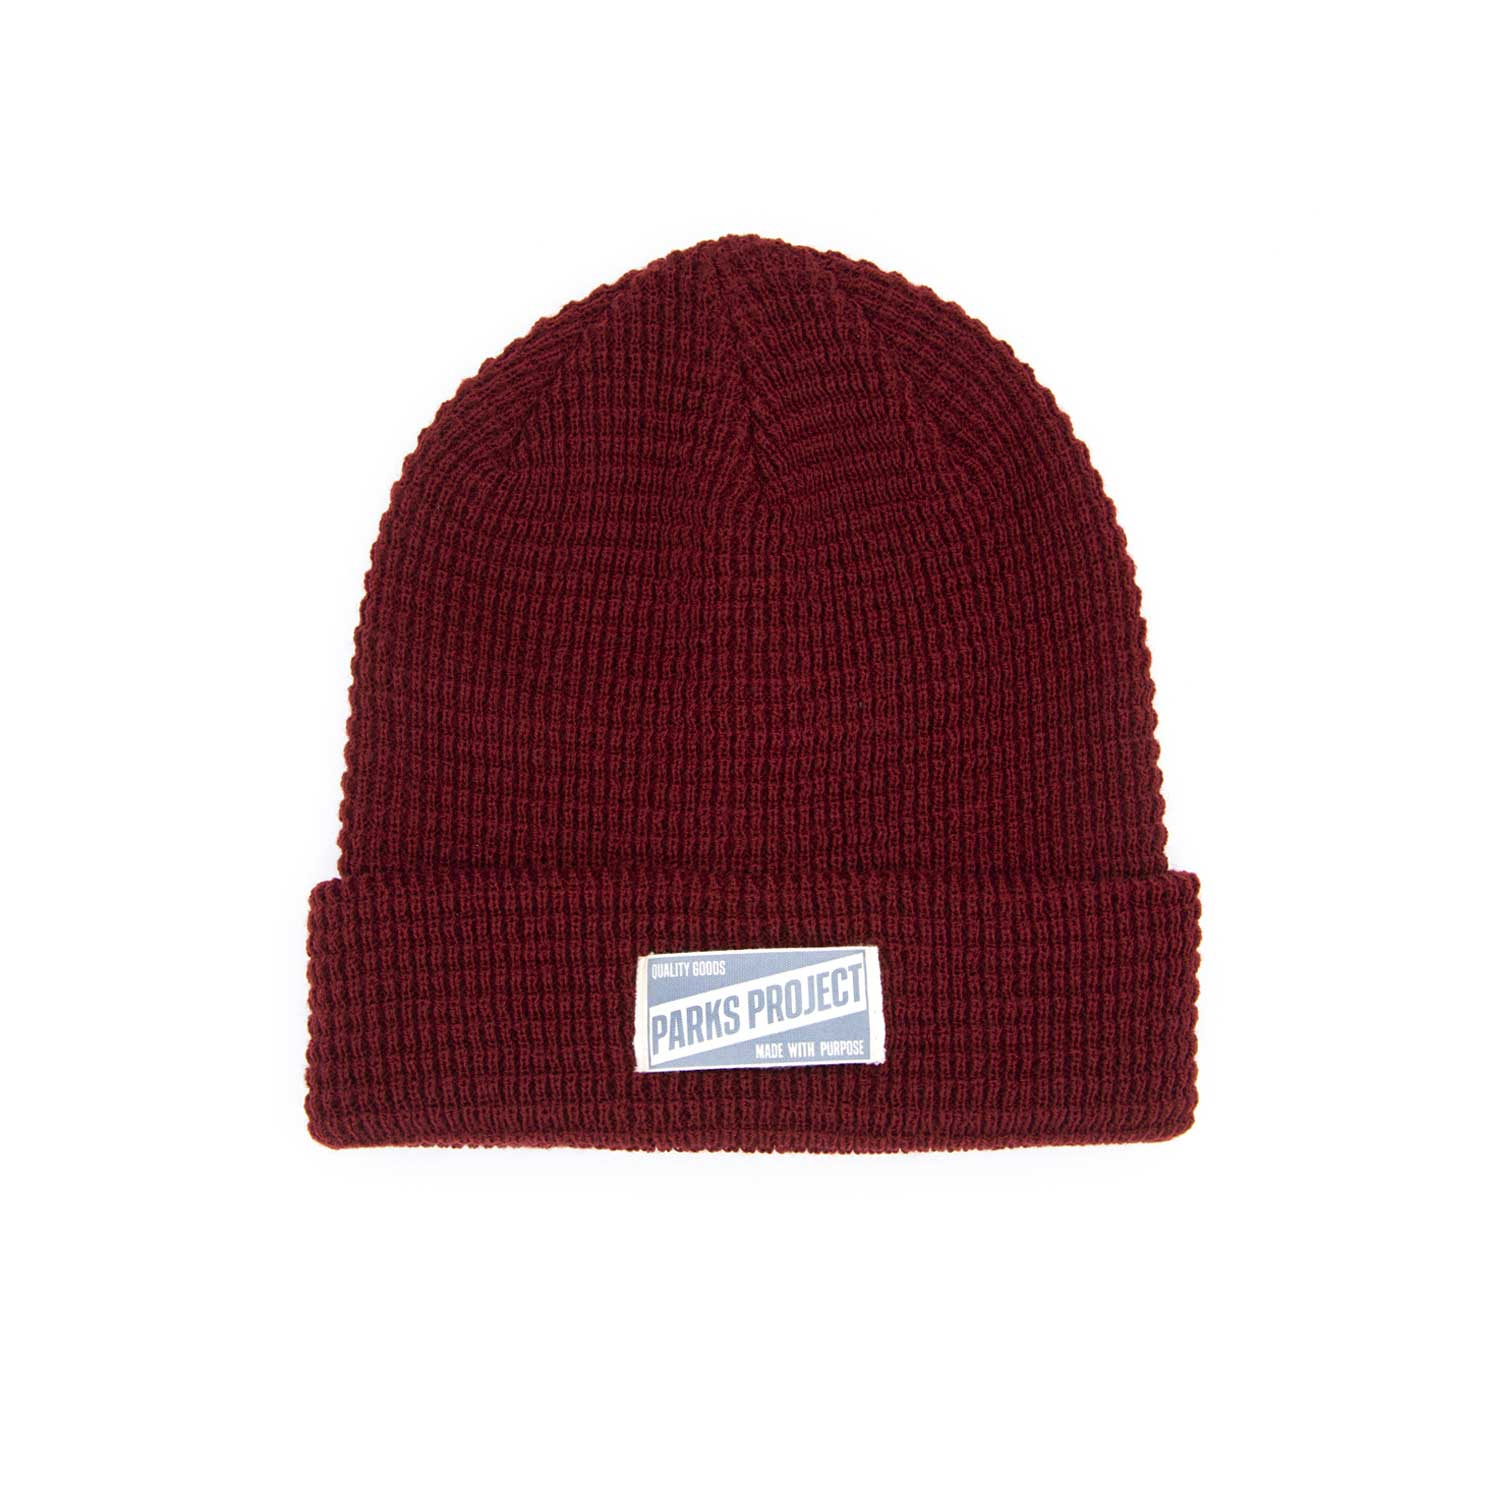 Quality Goods Deep Red Beanie | Parks Project | National Parks Gift Store